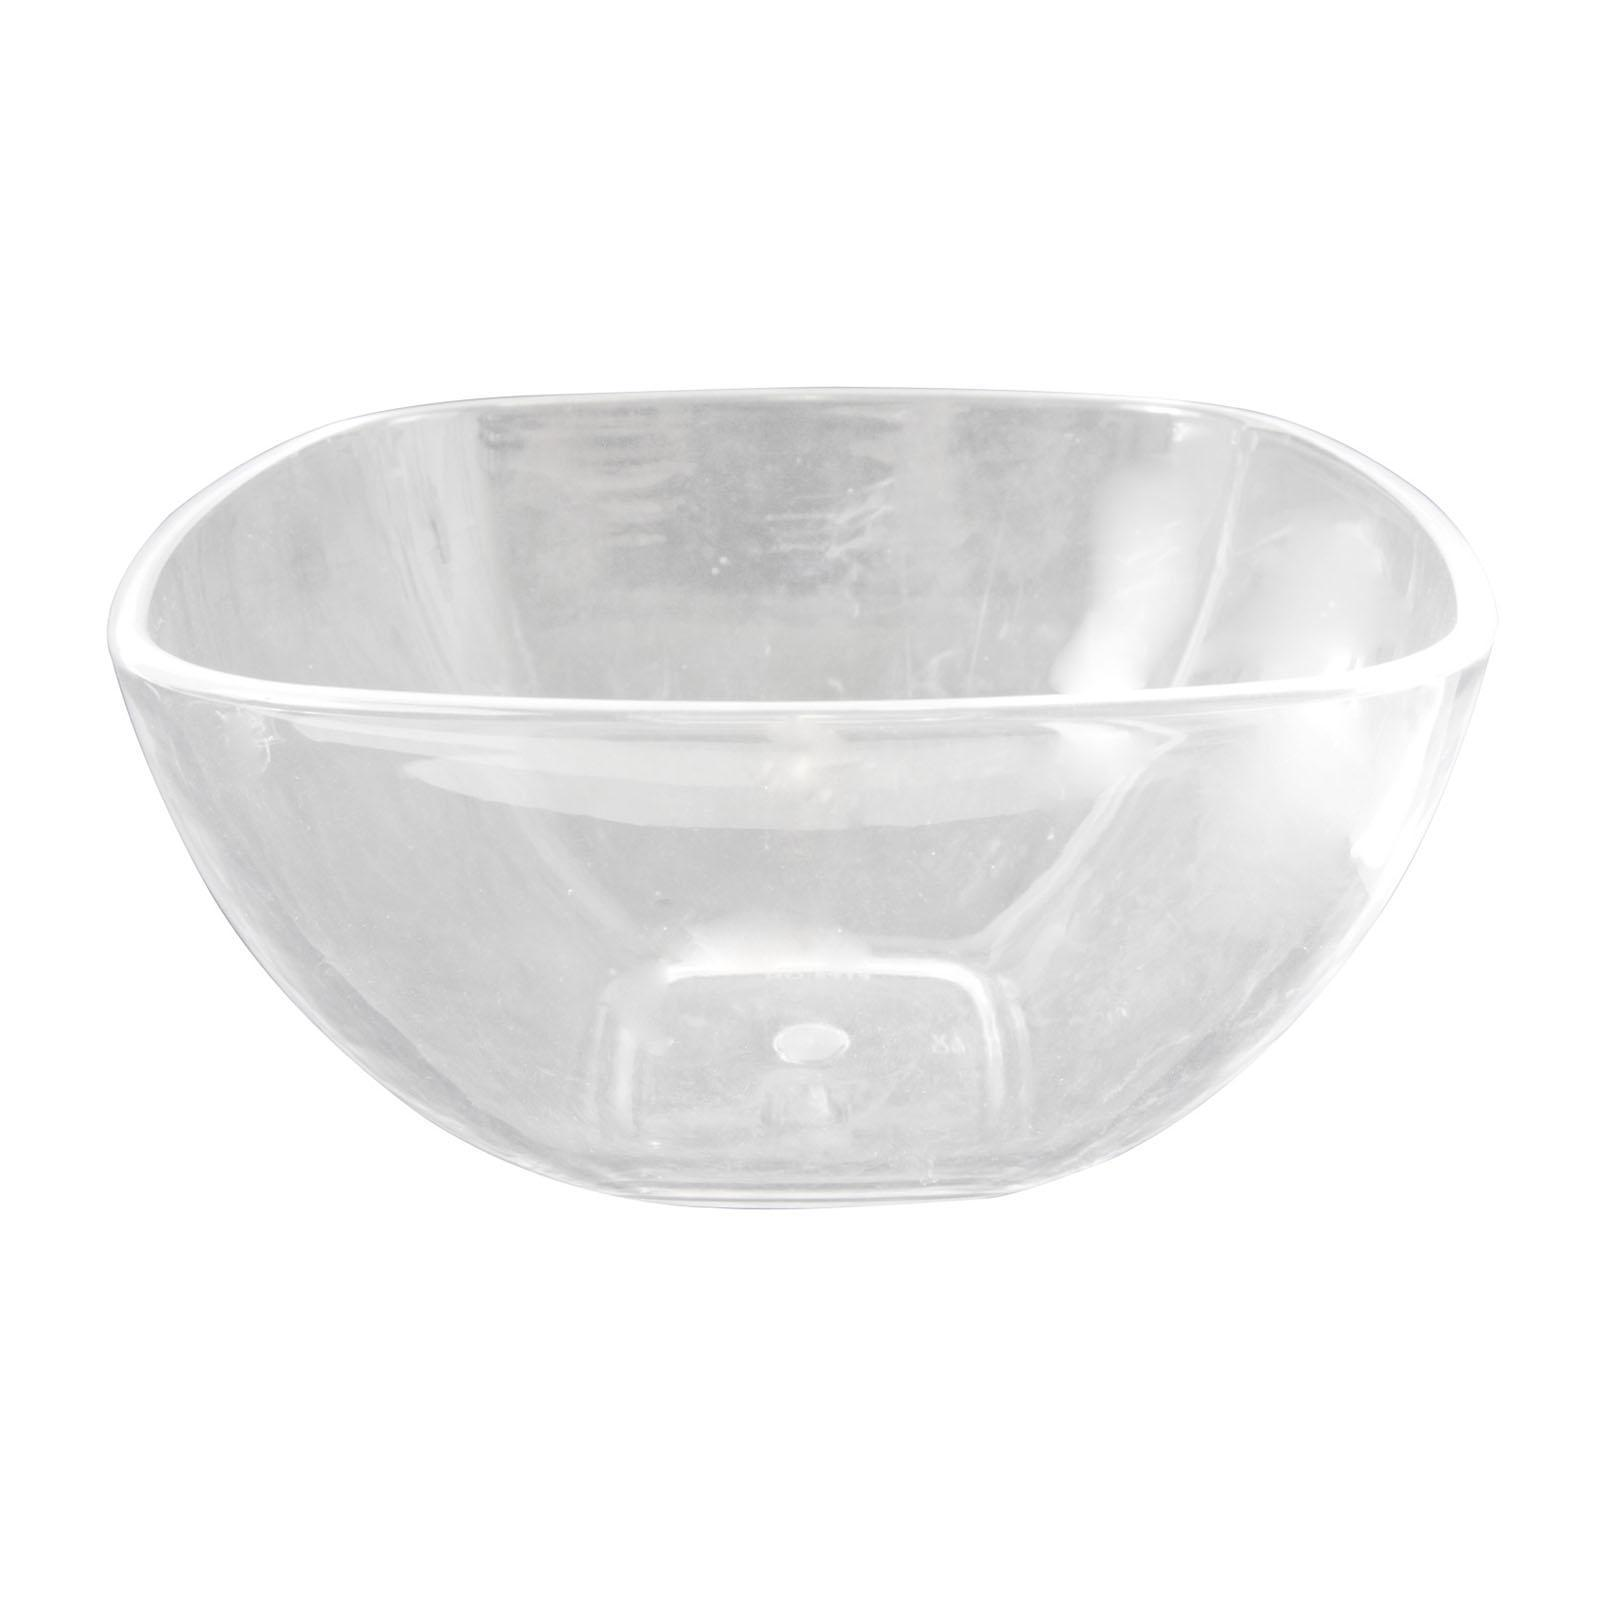 ToTT Clear Acrylic Square Salad Bowl 1200ML - By ToTT